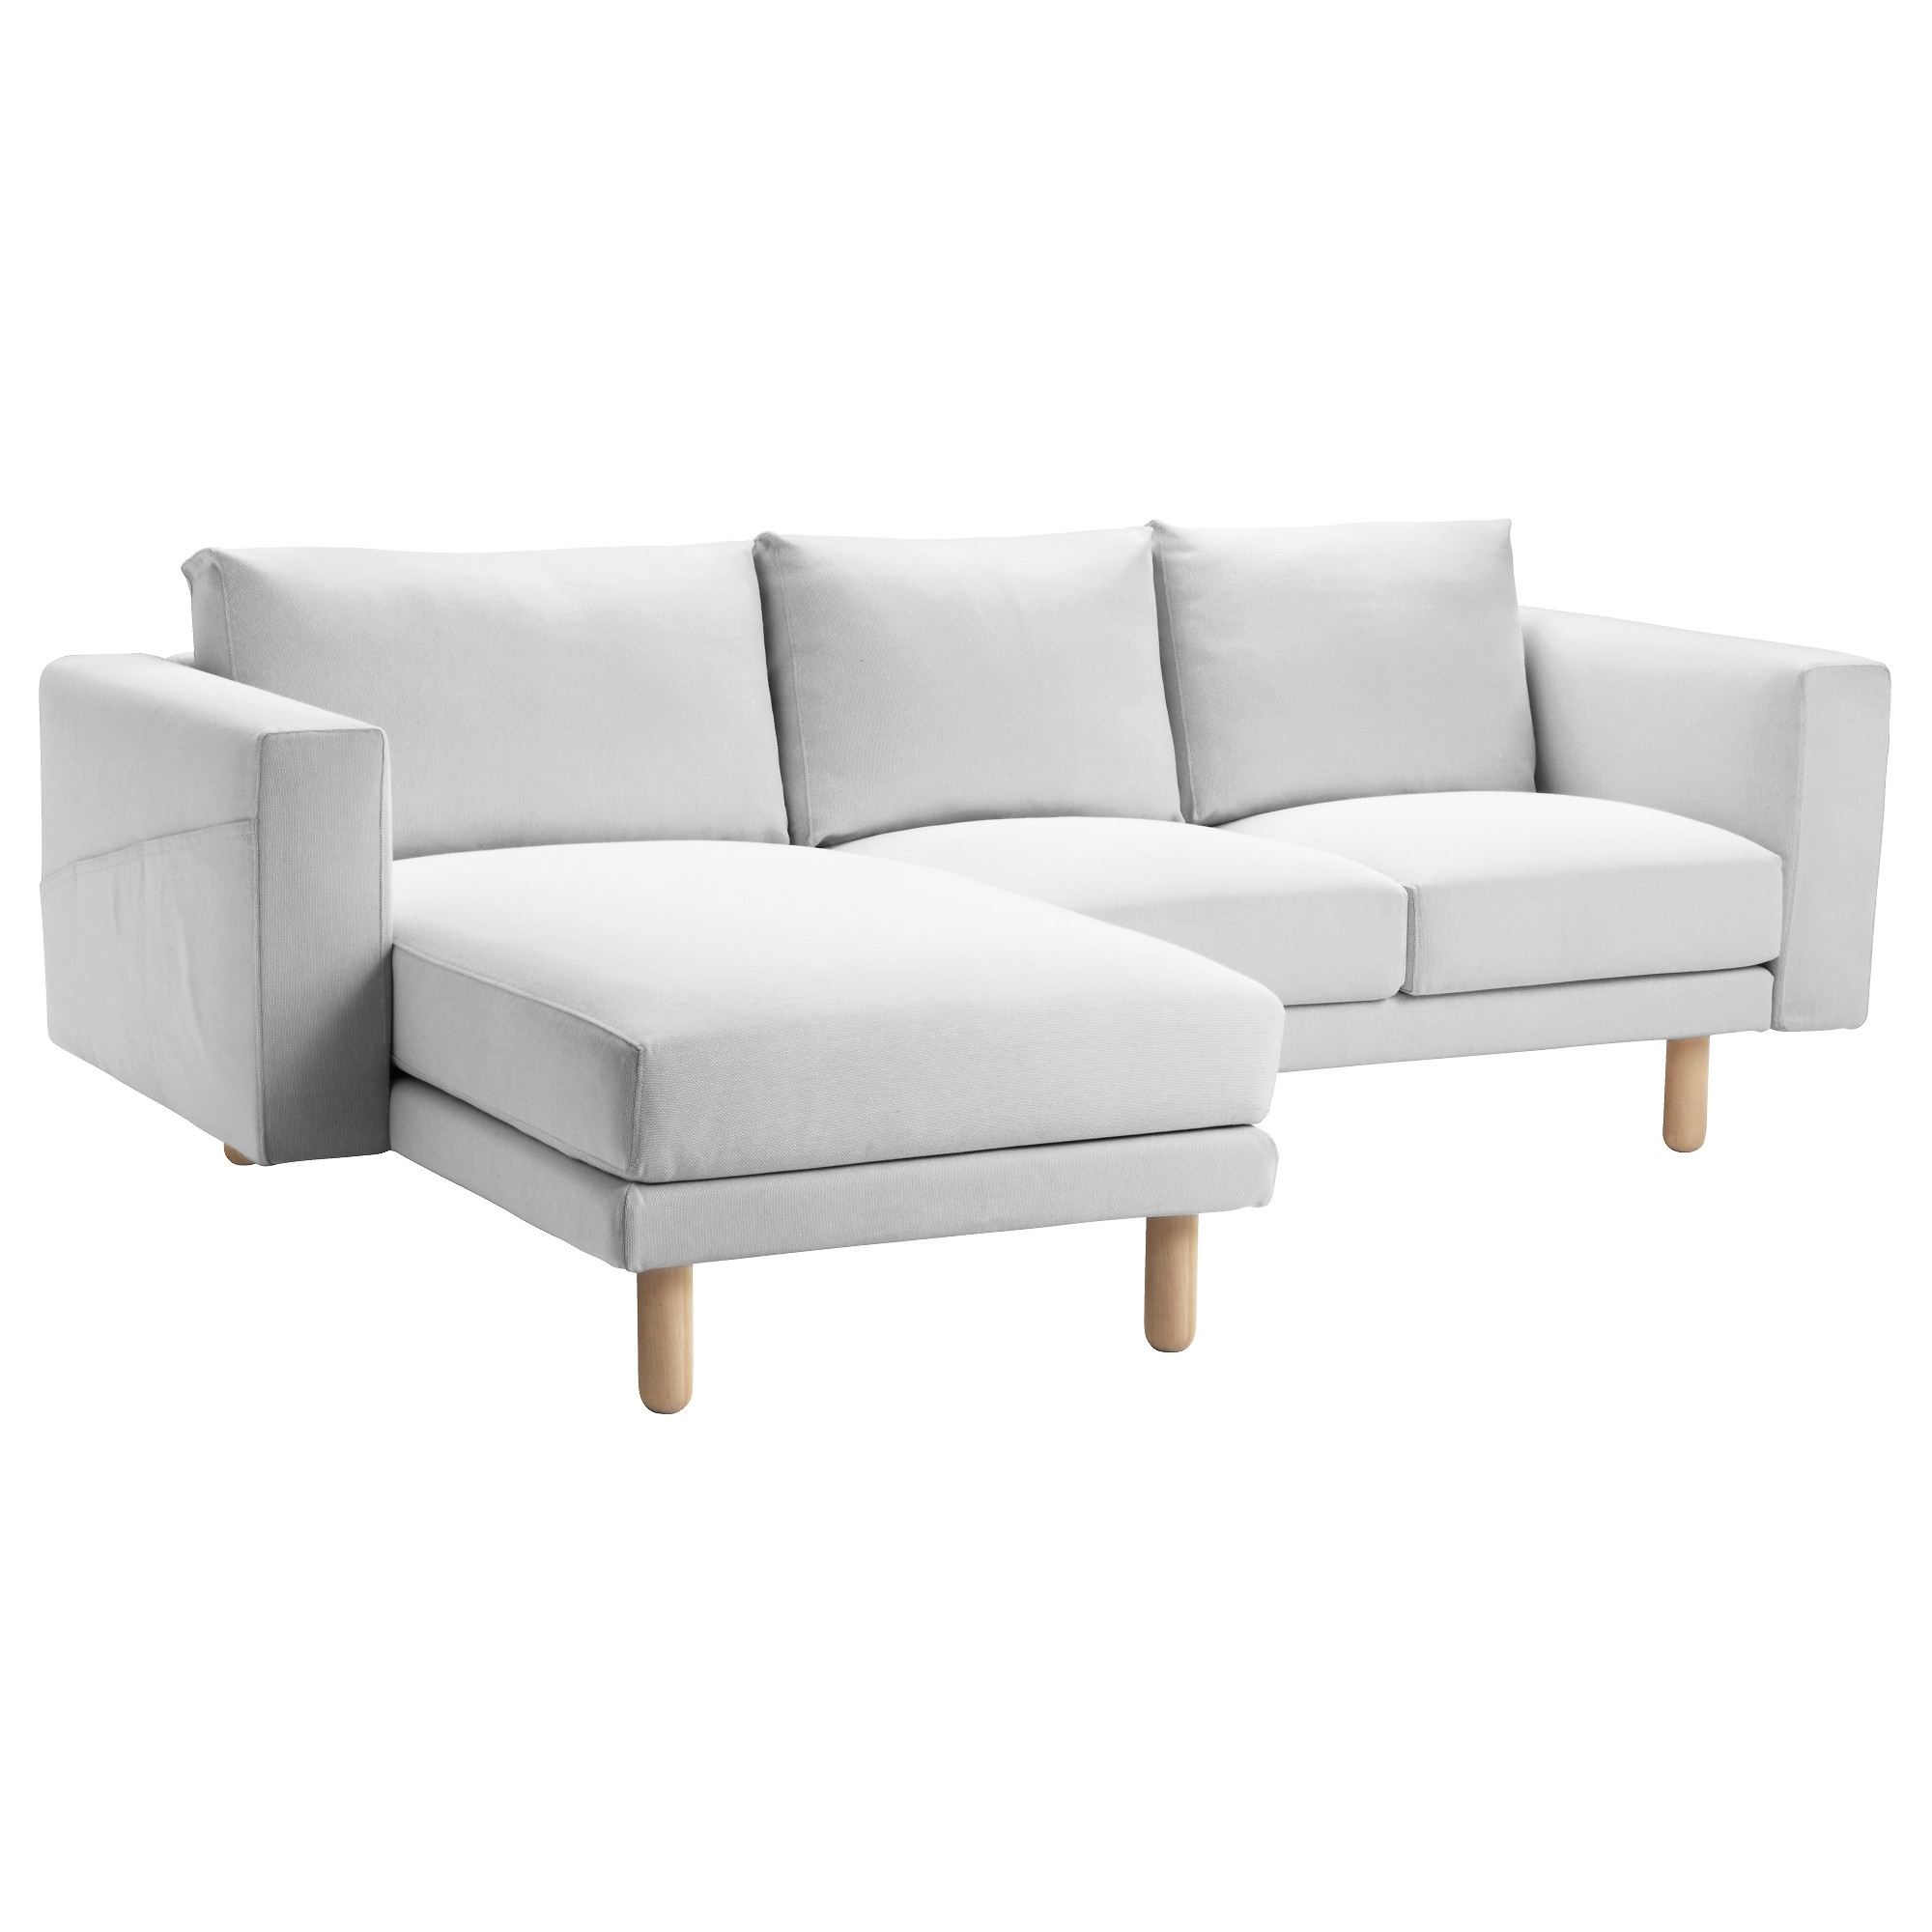 Most Up To Date Ikea Chaise Sofas Pertaining To Norsborg Sectional, 3 Seat – Finnsta White, Birch – Ikea (View 9 of 15)